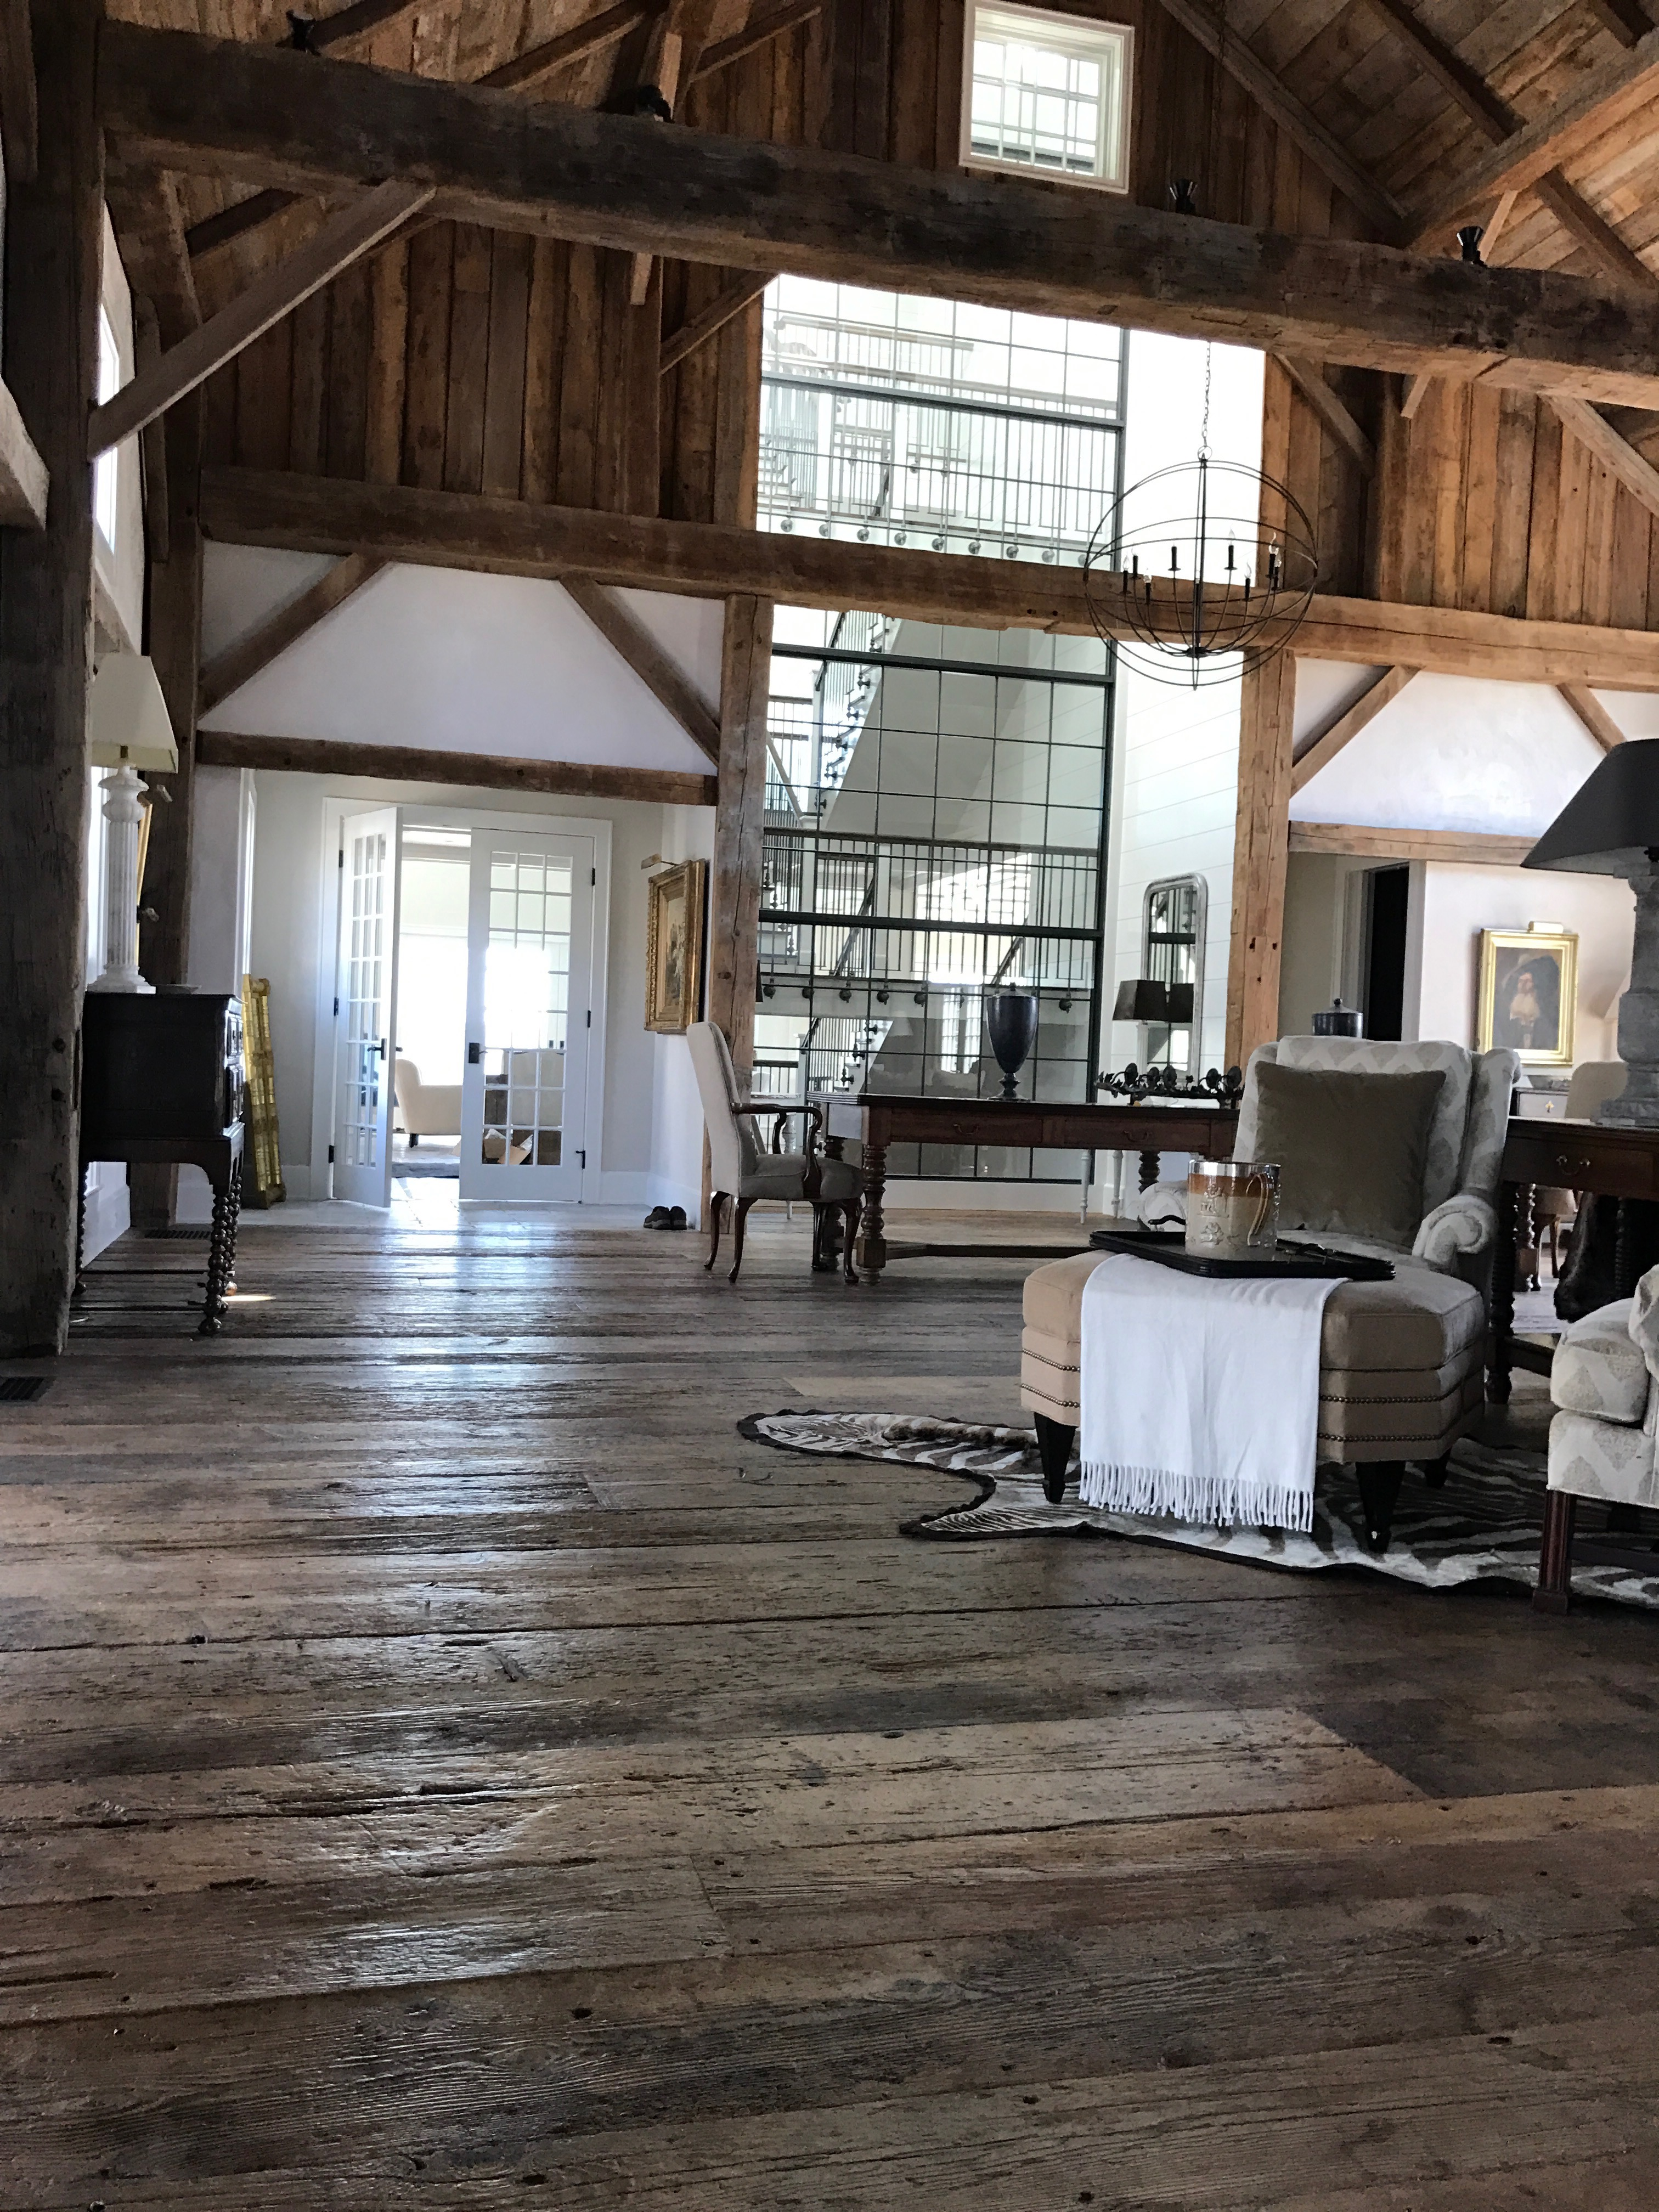 Reclaimed barn board flooring and timbers in a converted barn residence in Pemaquid, Maine